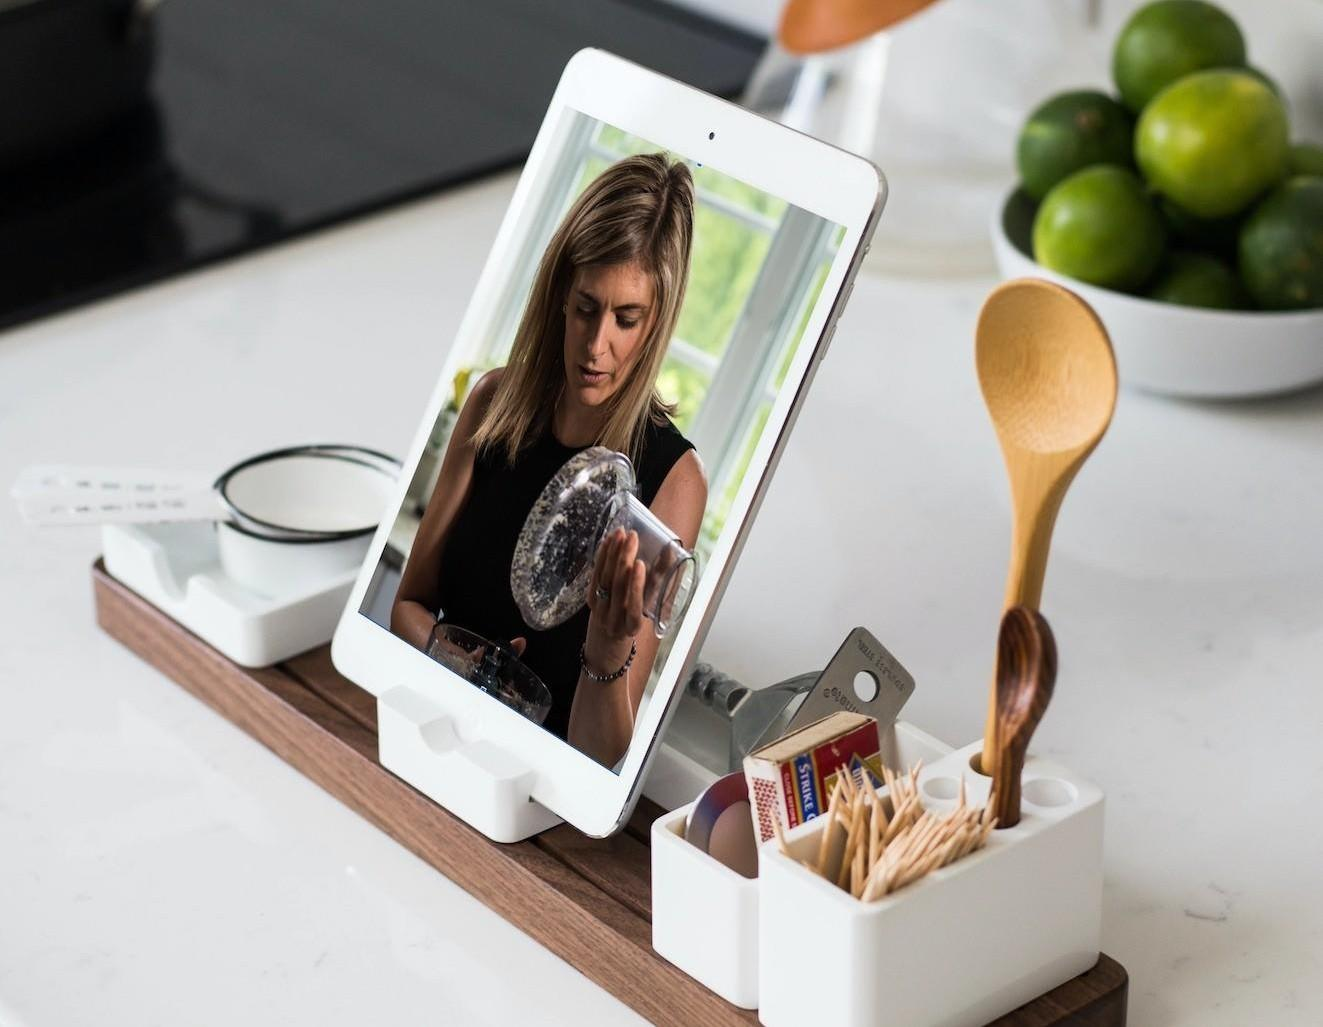 Ipad on stand in kitchen with image of Megan and a food processor on it